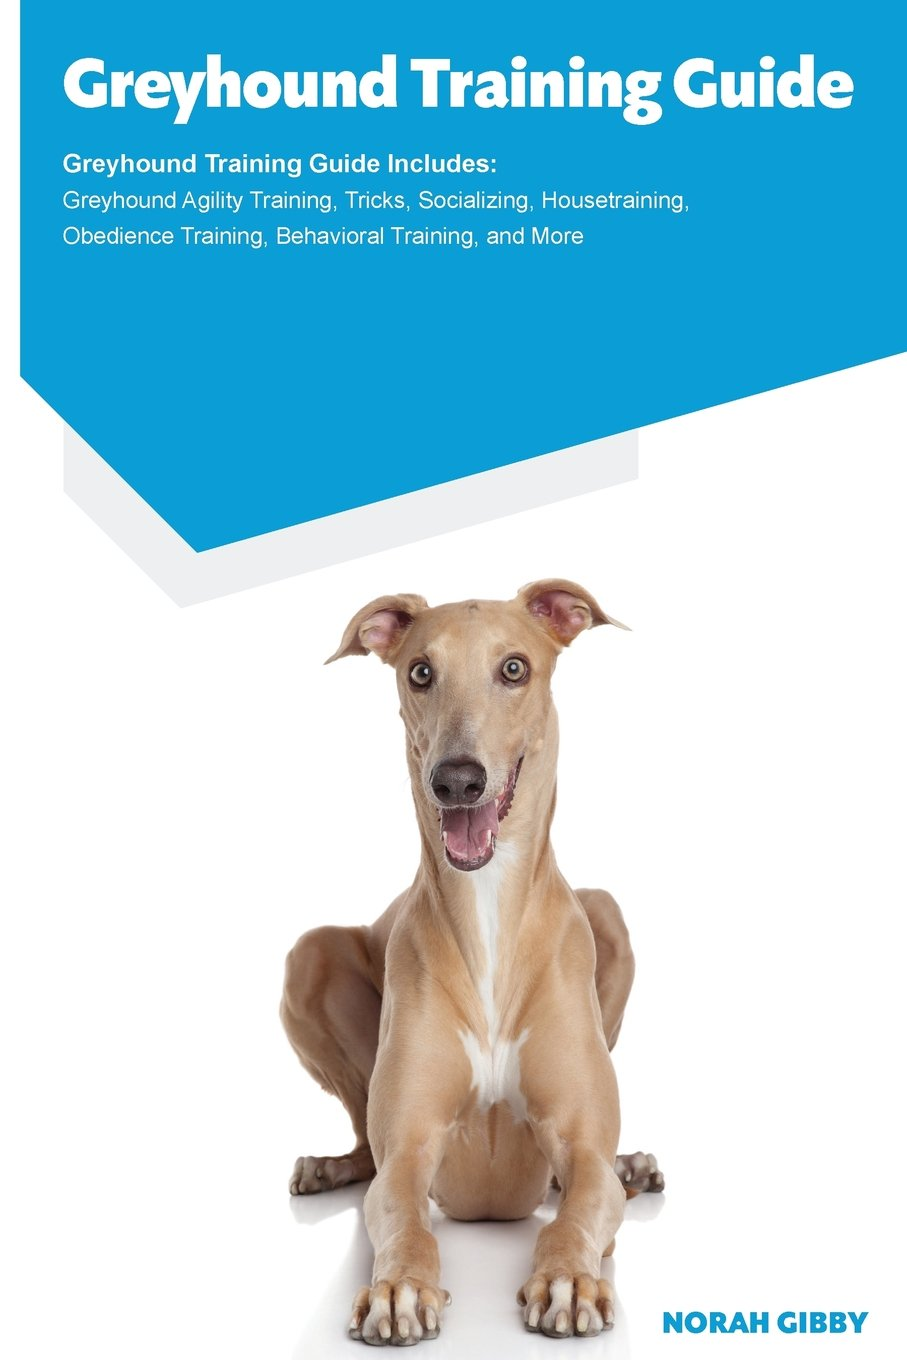 Greyhound Training Guide Greyhound Training Guide Includes: Greyhound Agility Training, Tricks, Socializing, Housetraining, Obedience Training, Behavioral Training, and More ebook